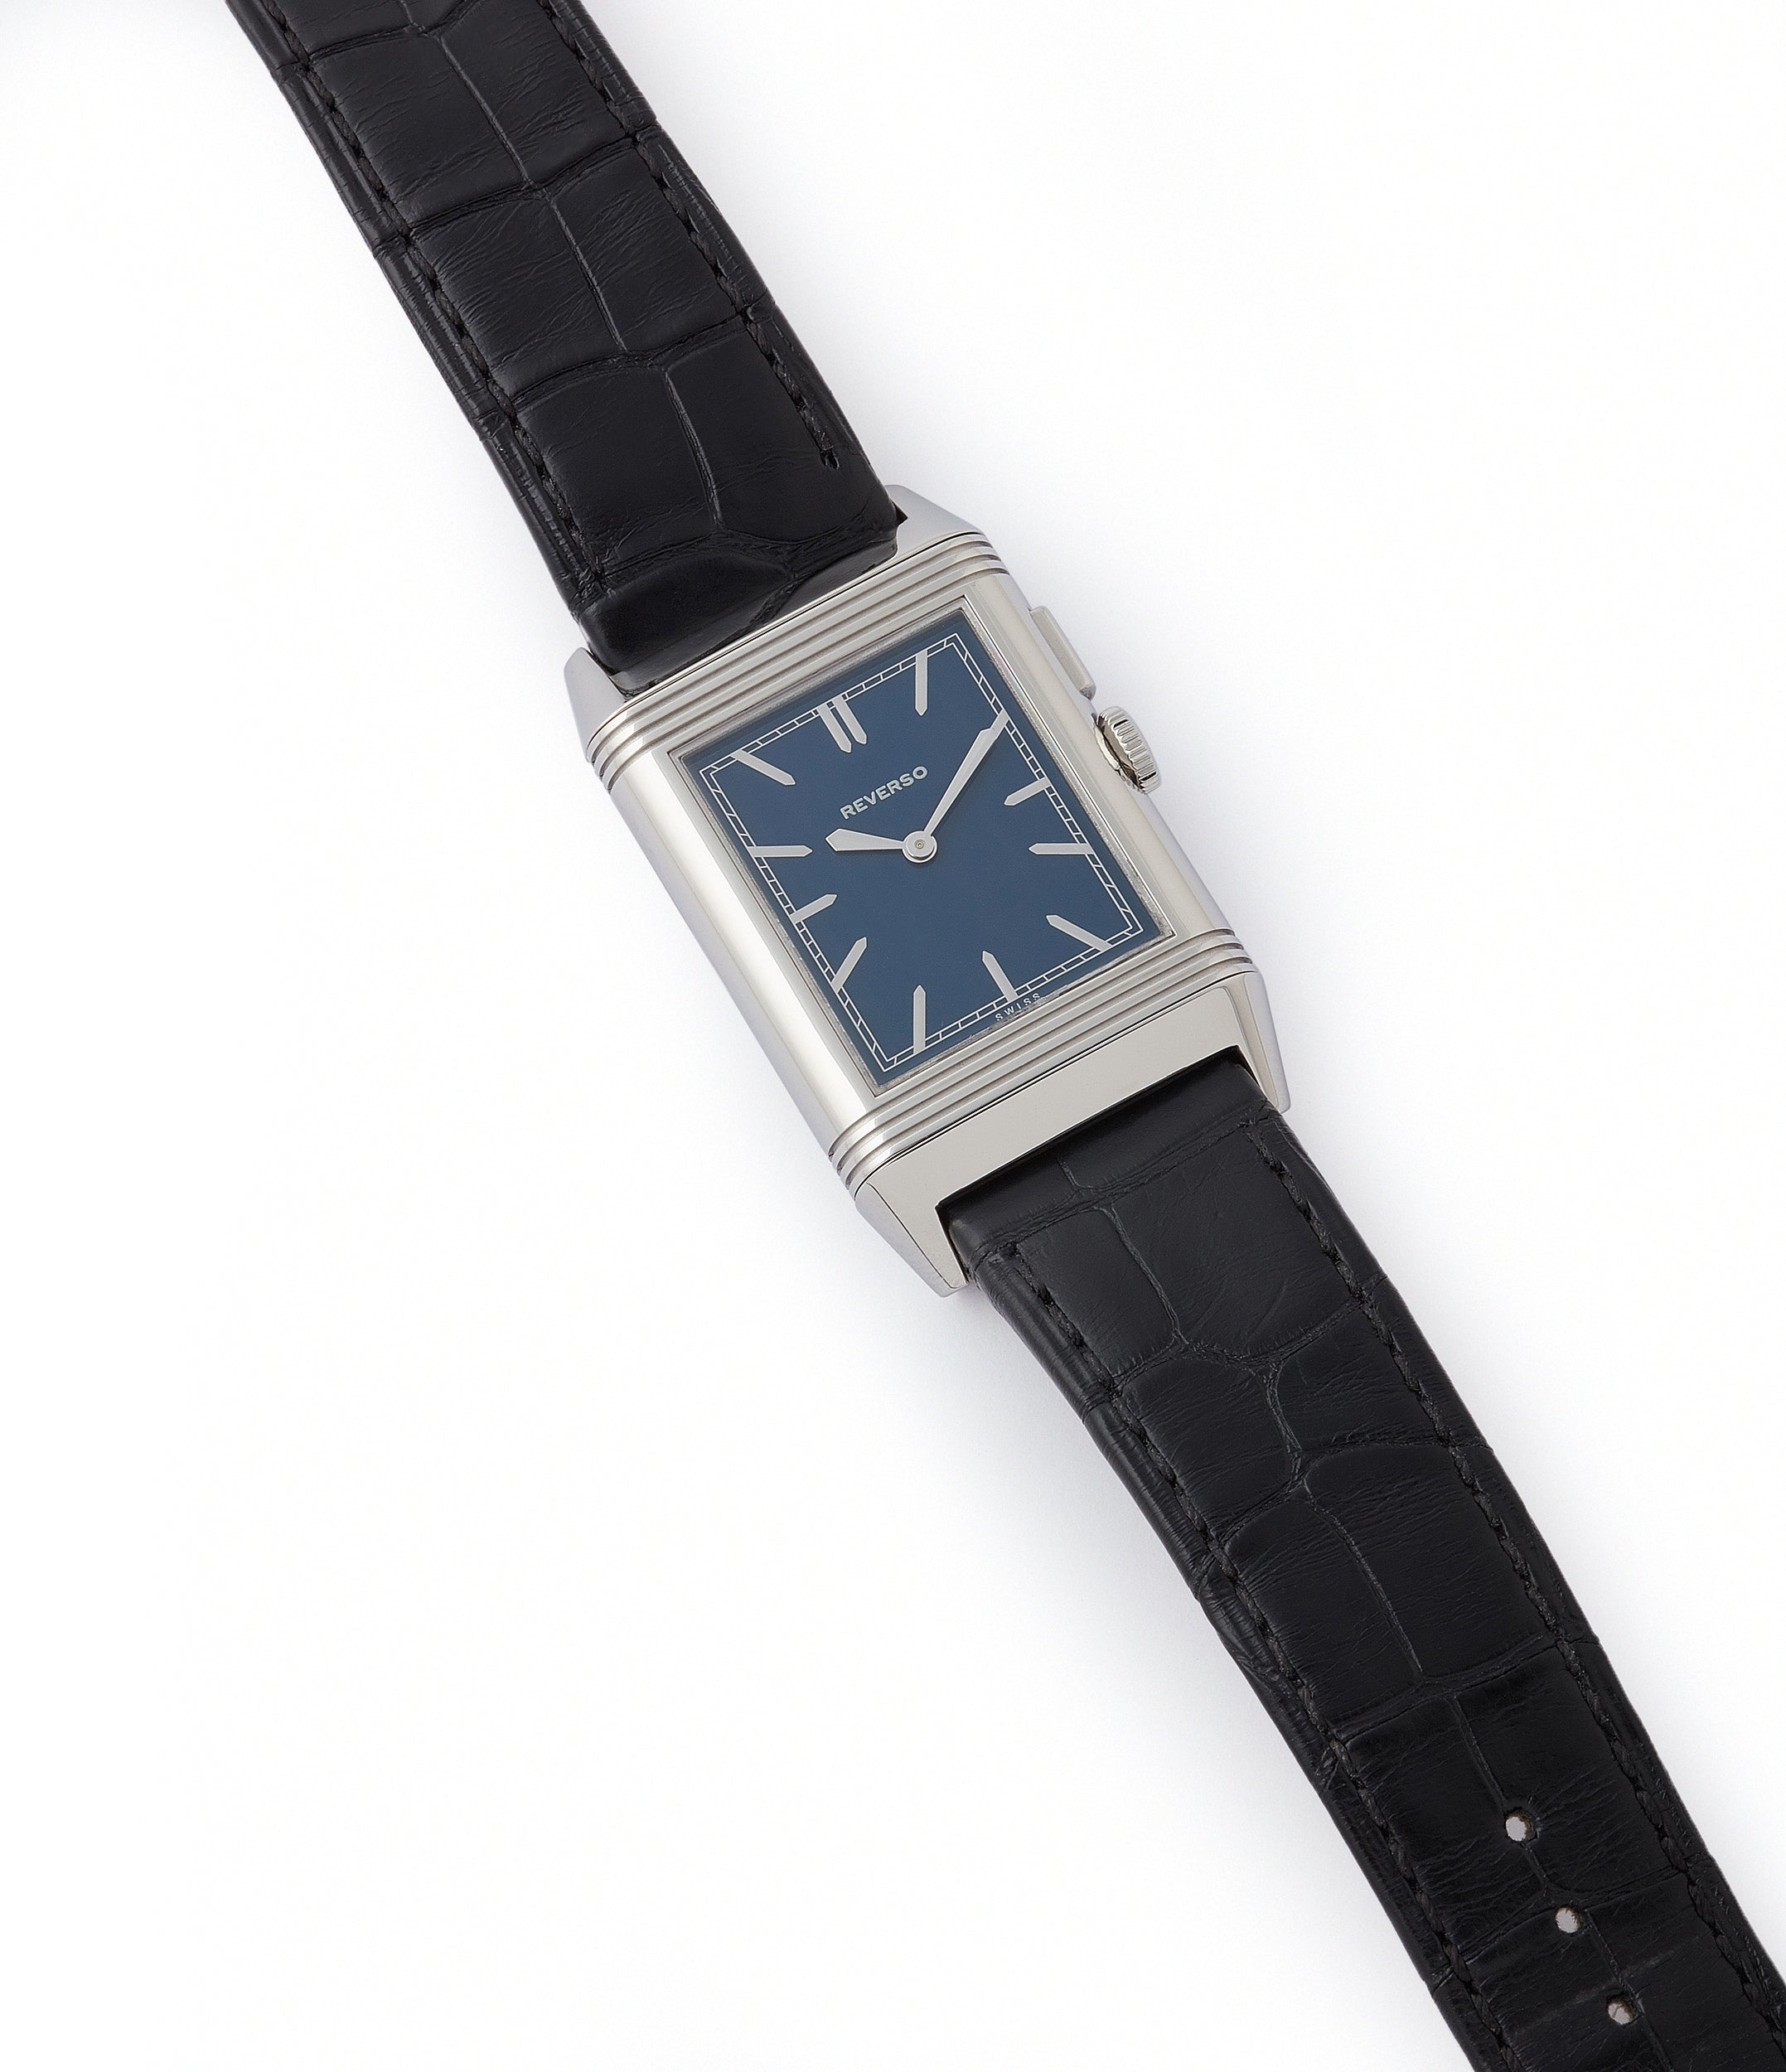 selling Jaeger-LeCoultre Grand Reverso Duoface Blue Ultra-Thin Boutique Edition 278.8.54 steel preowned traveller